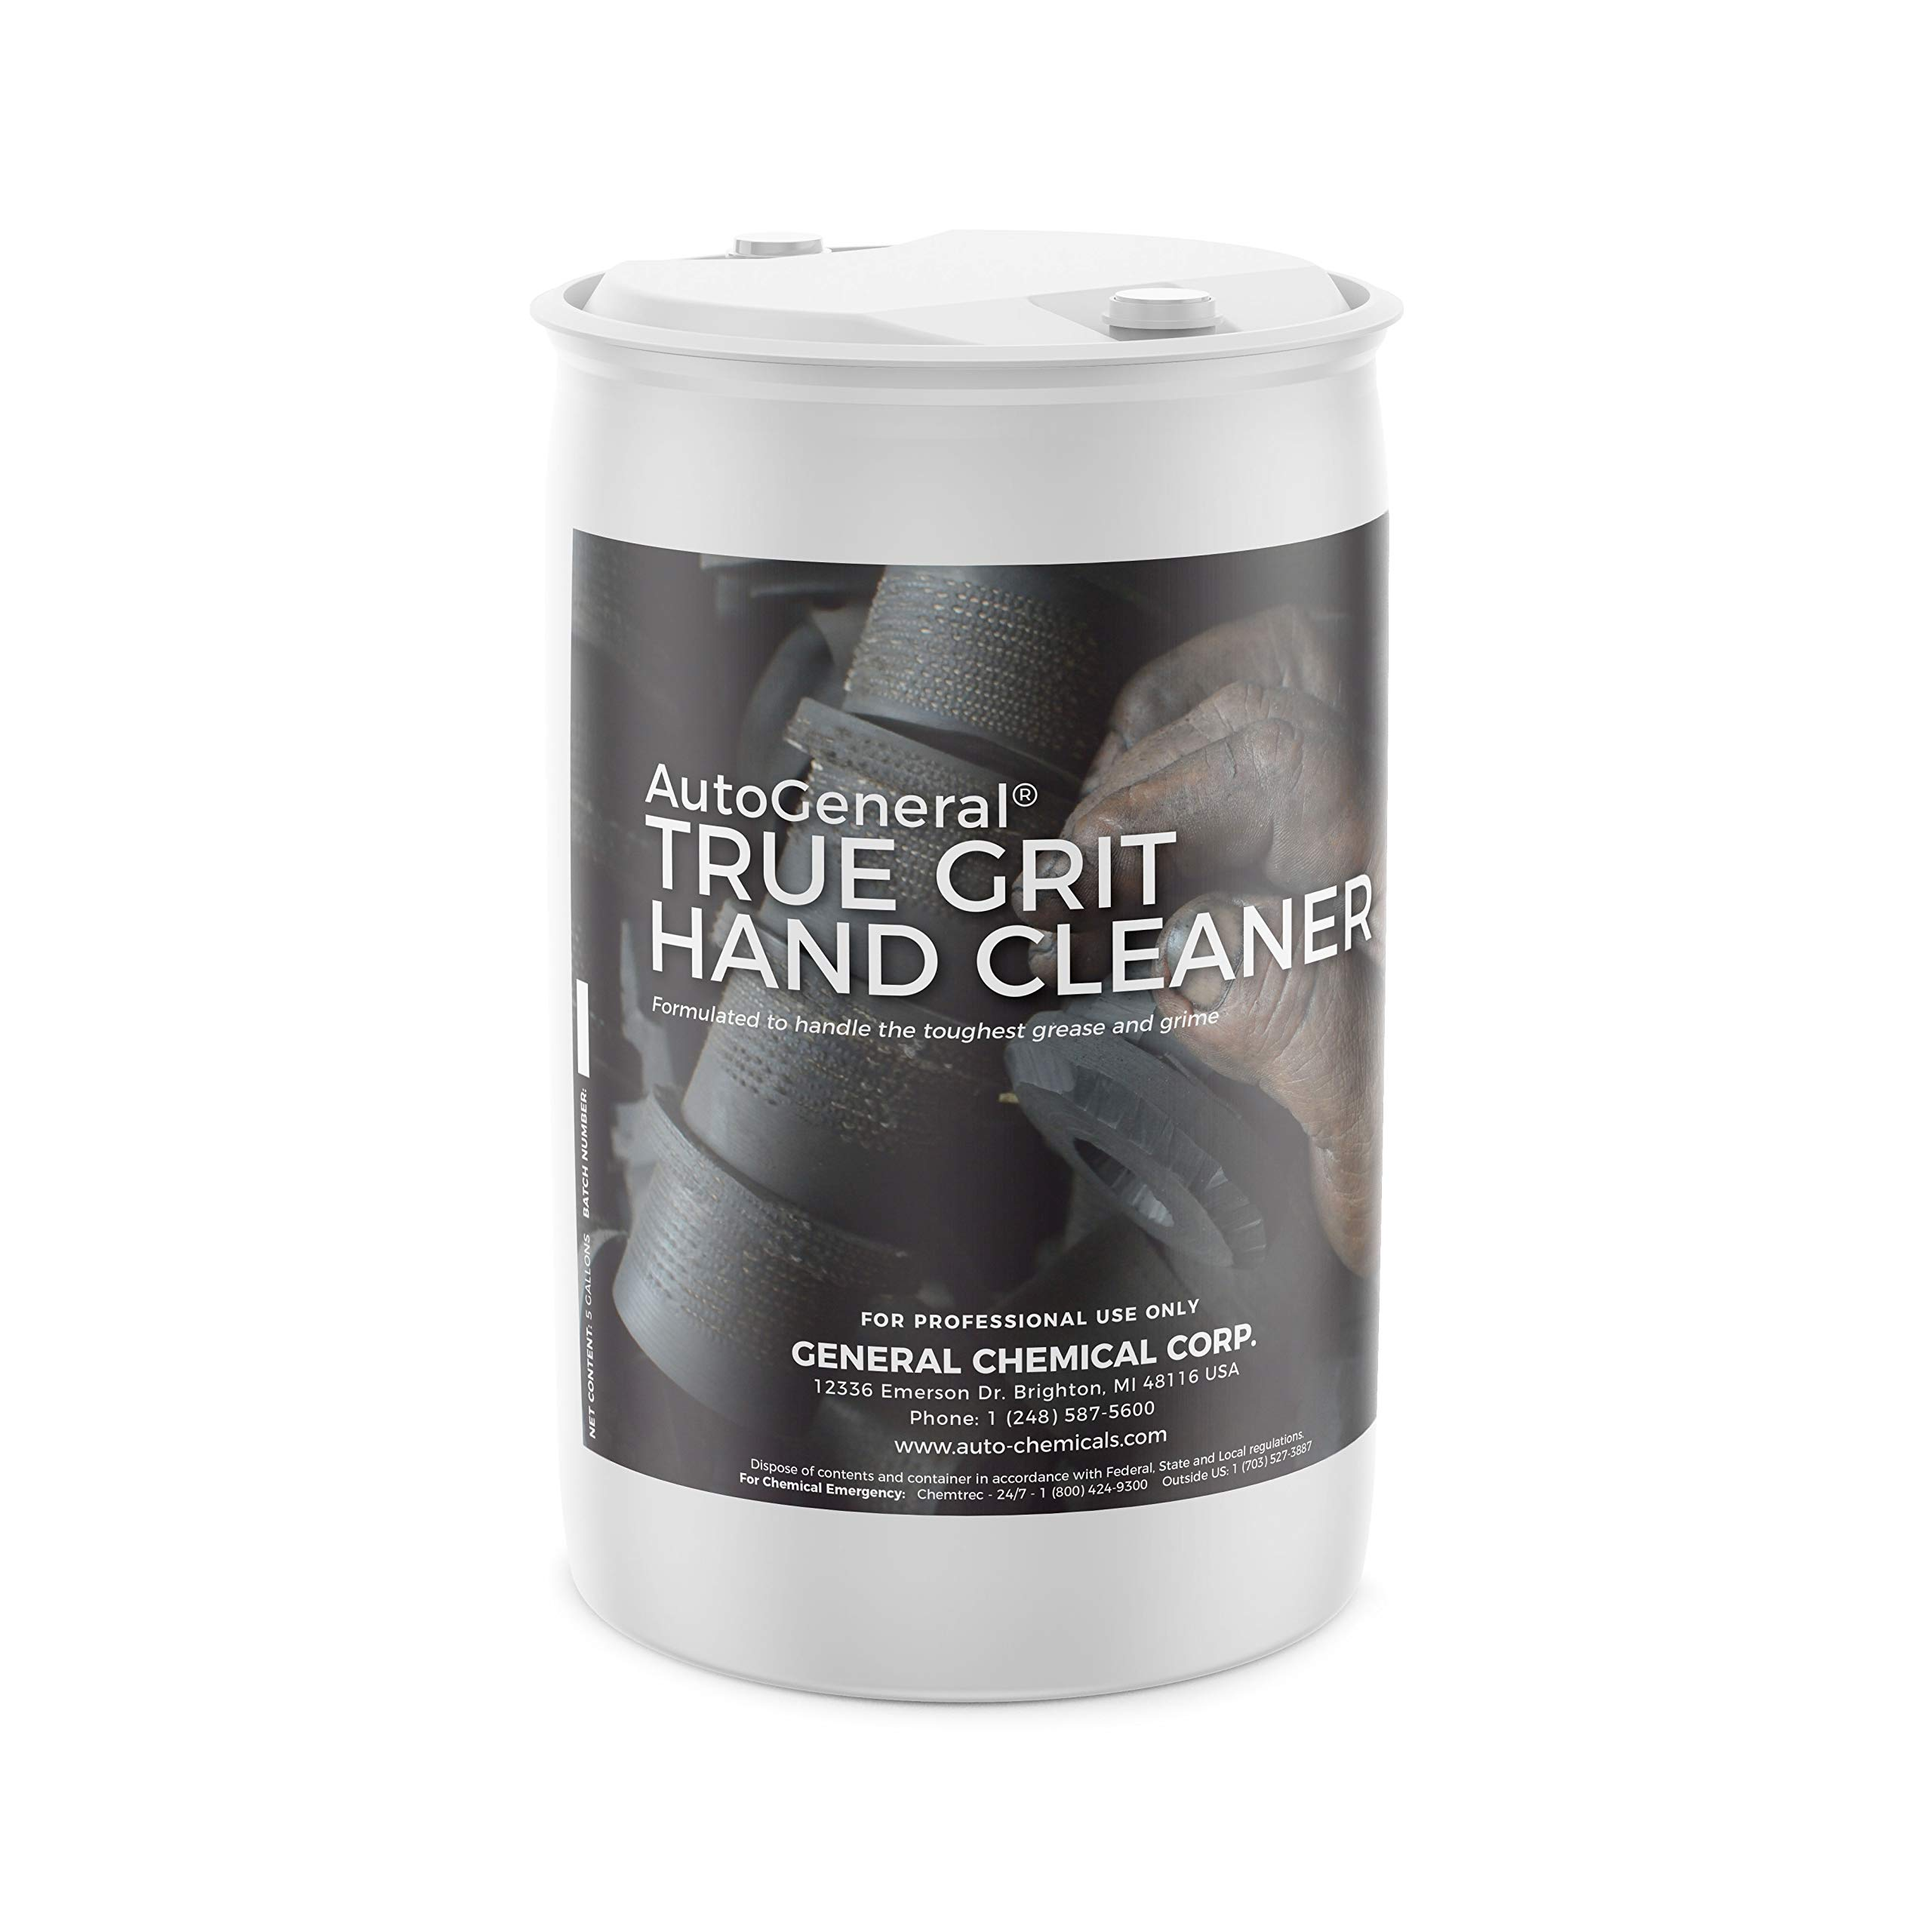 Auto General True GRIT Hand Cleaner Lotion Removes Tough Grease, Stains & Residue for Painters Auto Mechanics & Craftsman (55 Gallons)